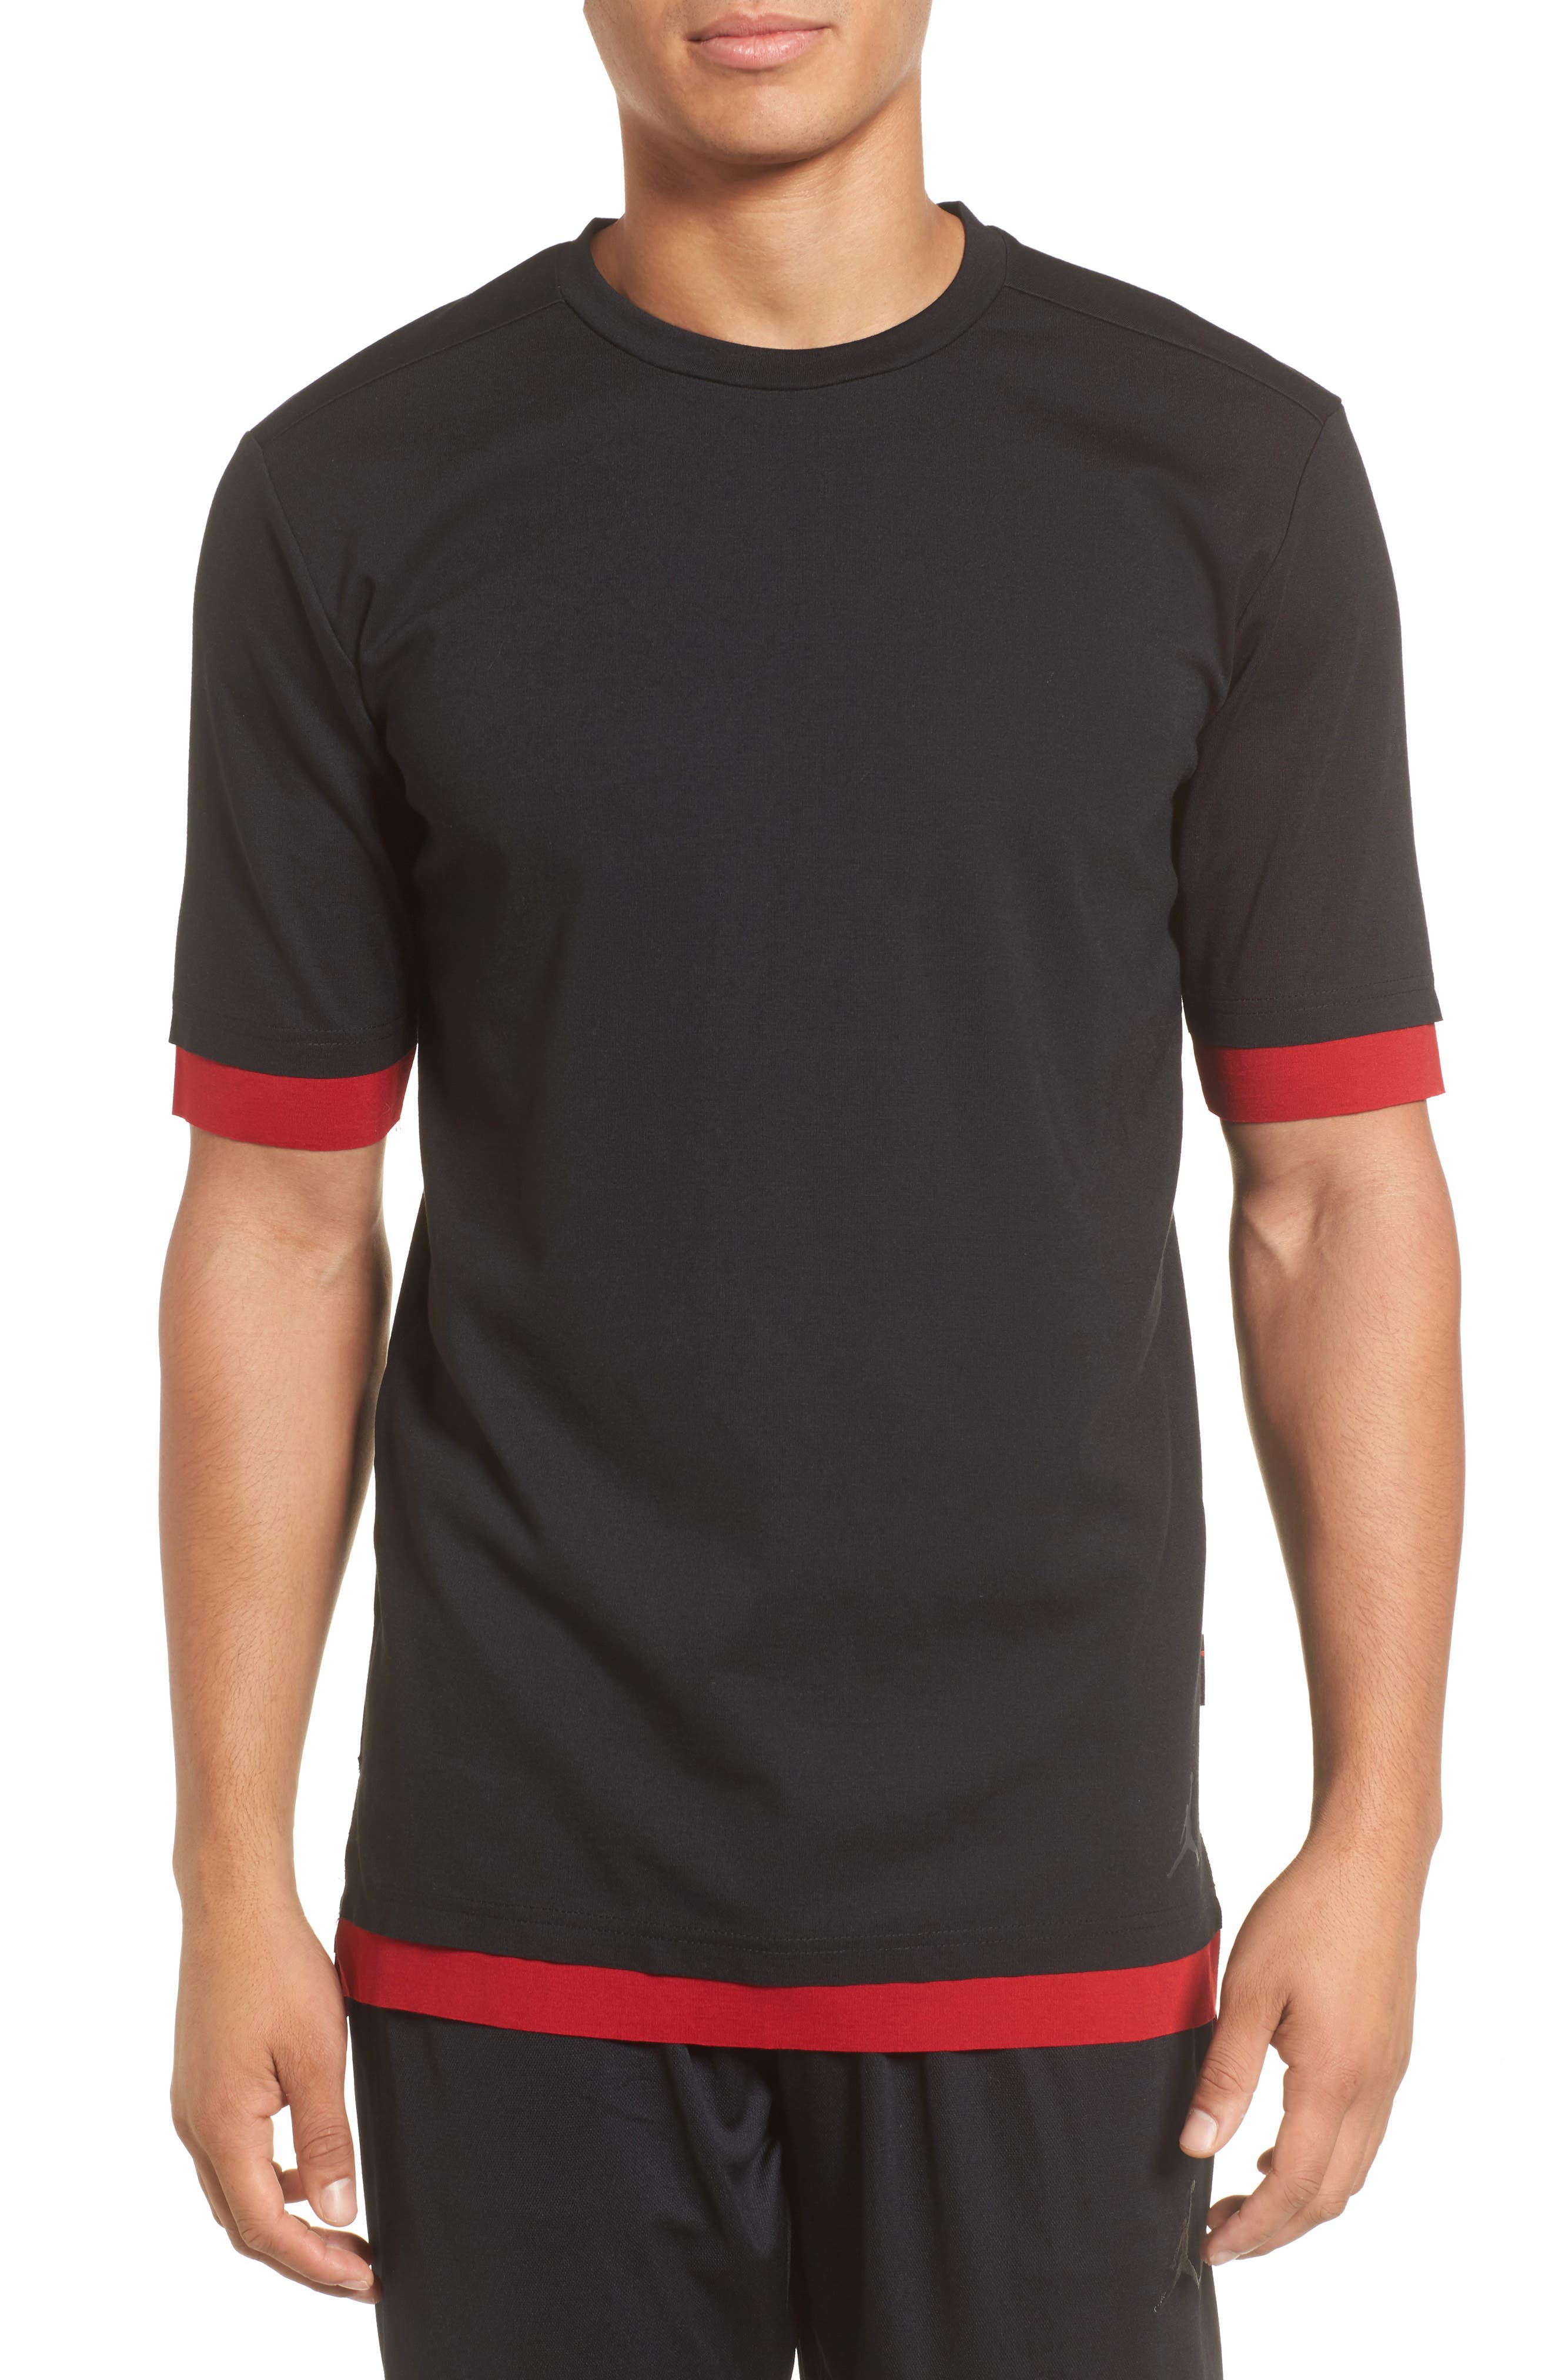 Sportswear Tech T-Shirt,                             Main thumbnail 1, color,                             Black/ Gym Red/ Anthracite